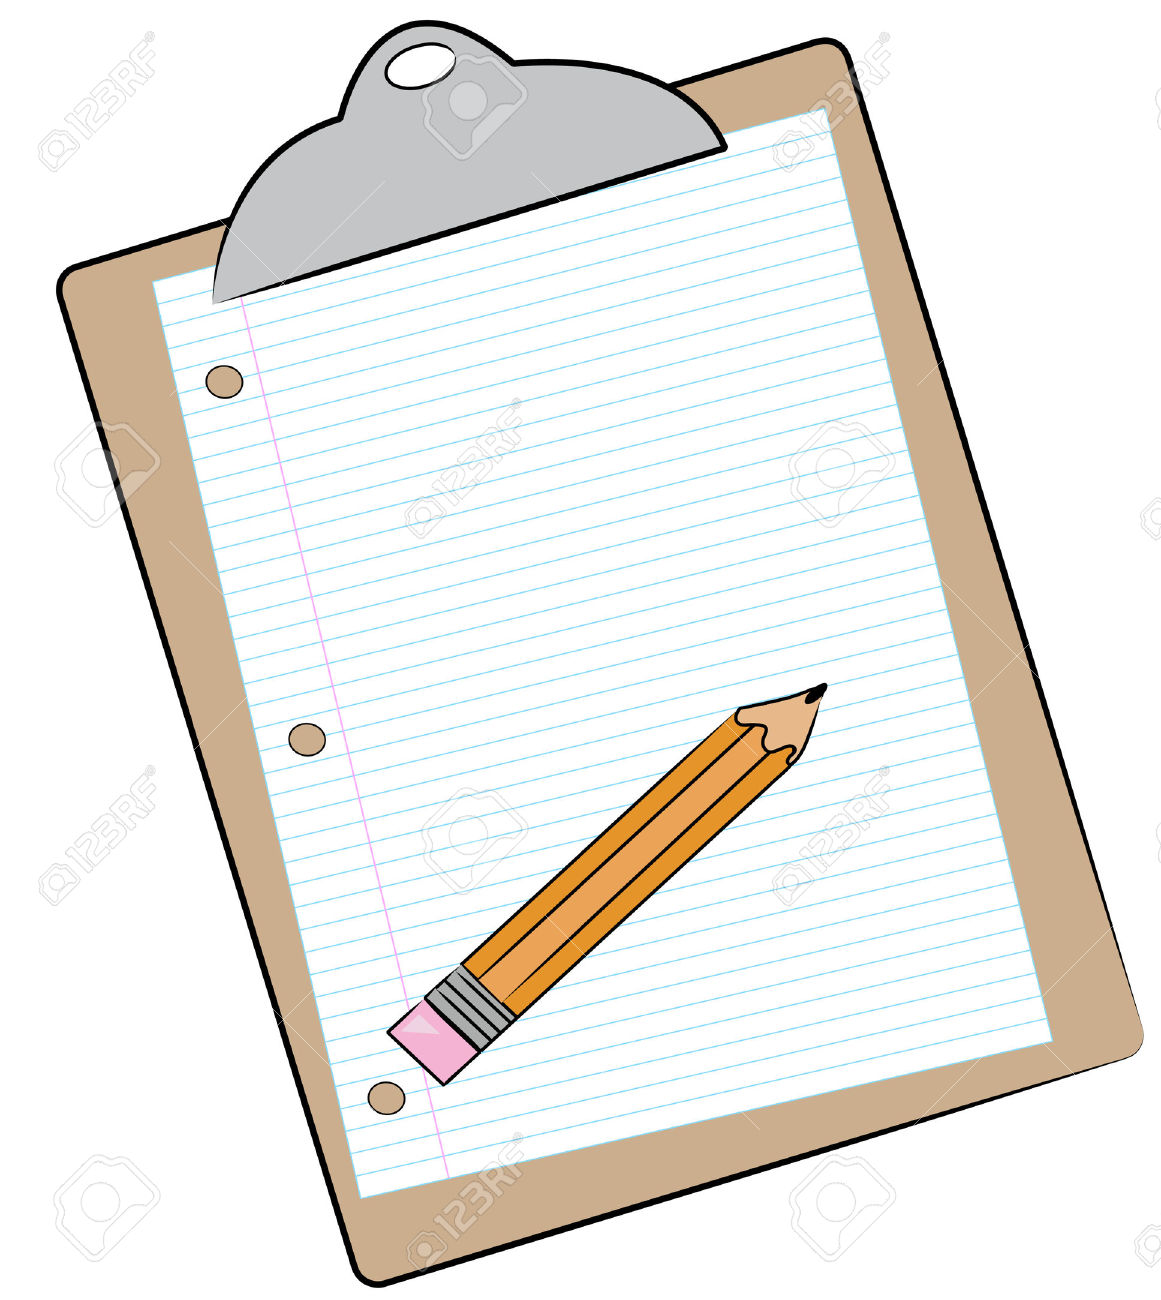 1116 Clipboard free clipart.